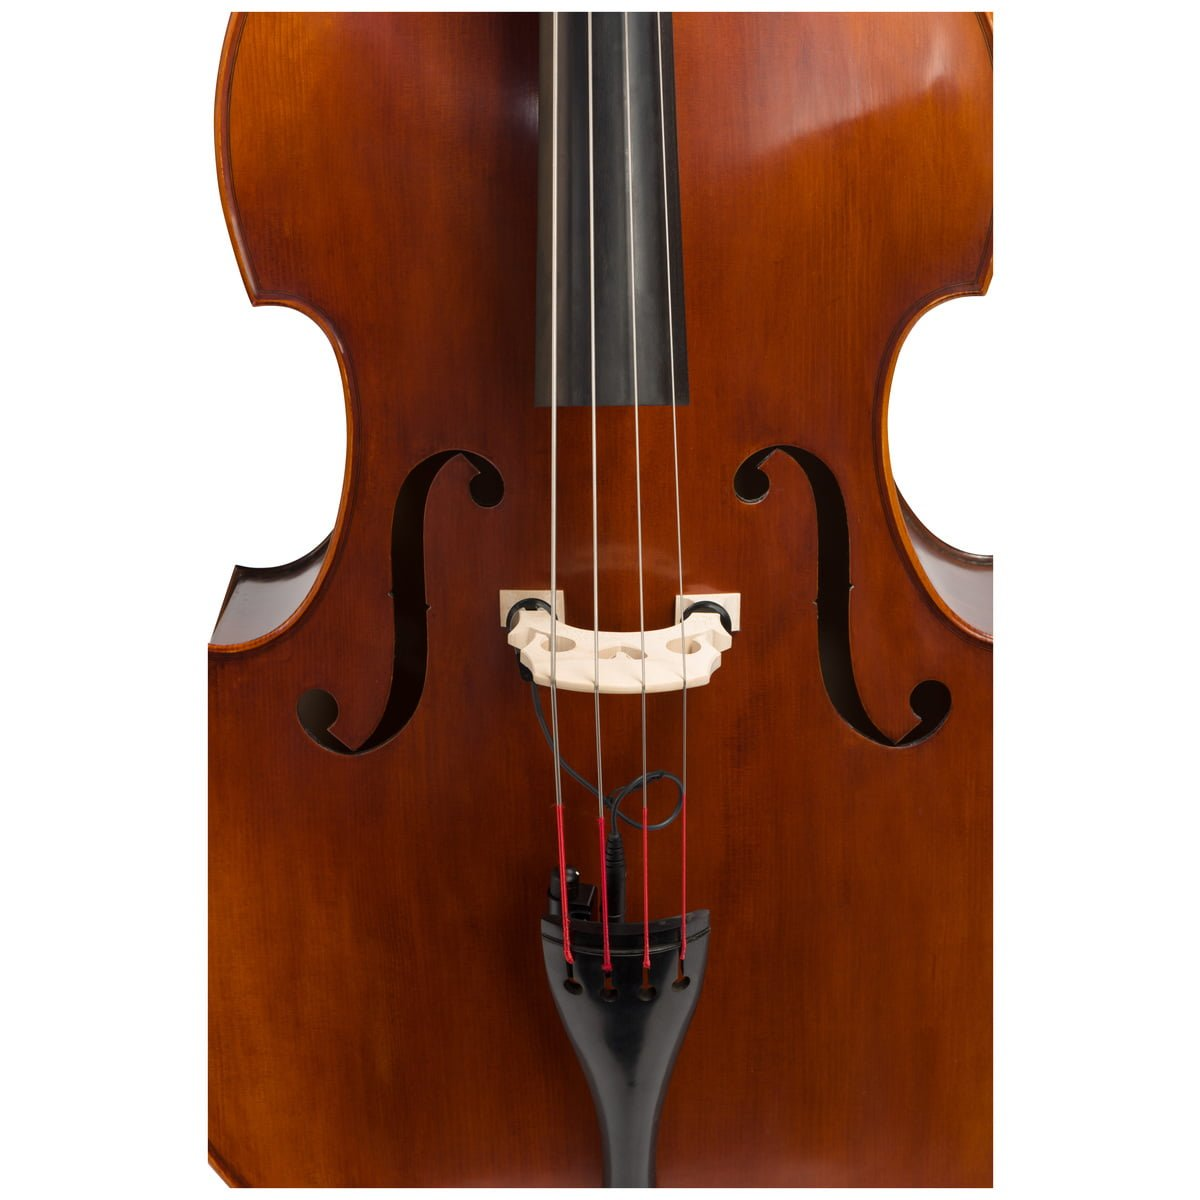 Front view of Eastman VB105 double bass fitted with an adjustable bridge and Spirocore strings